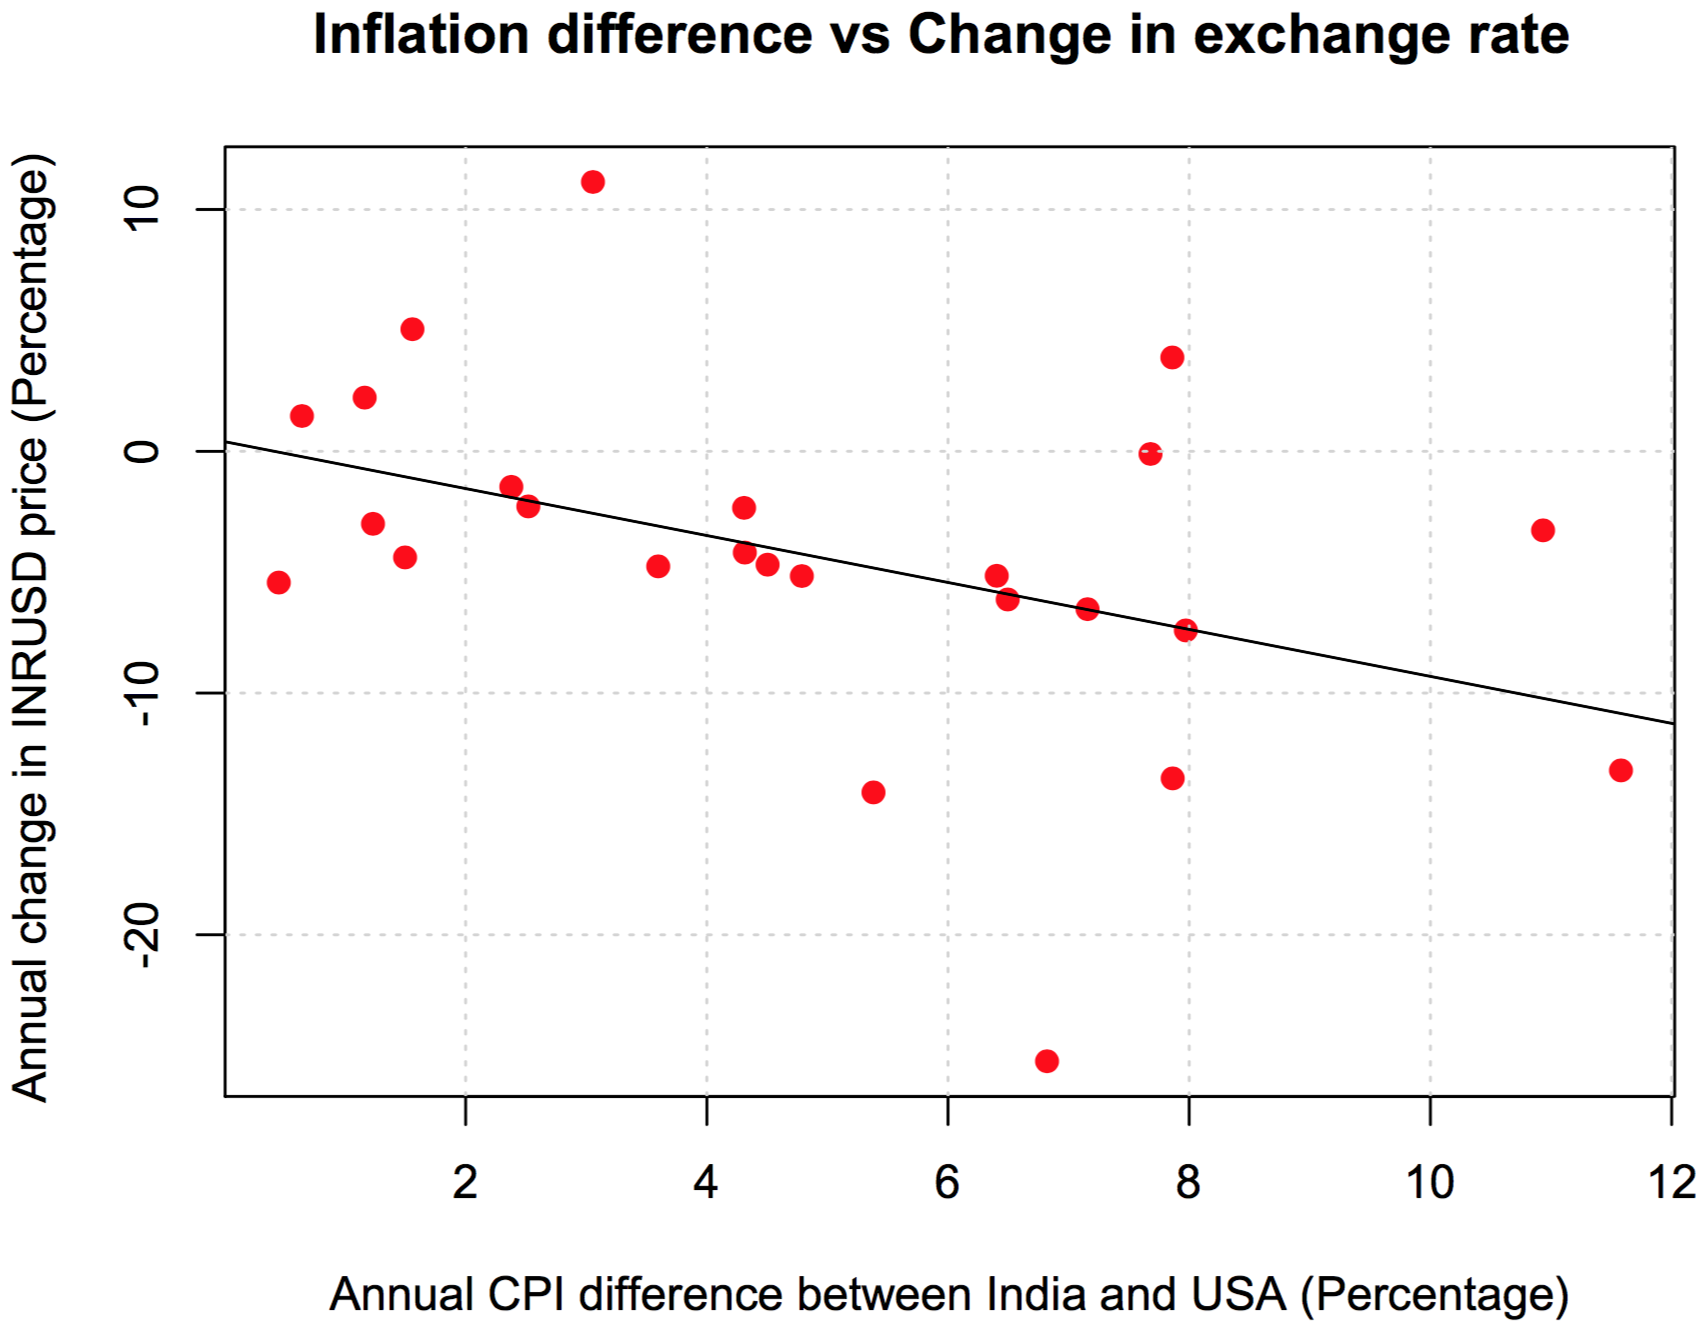 There Is A Clear Negative Relation Between Inflation Diffeial And Ru Dollar Exchange Rate